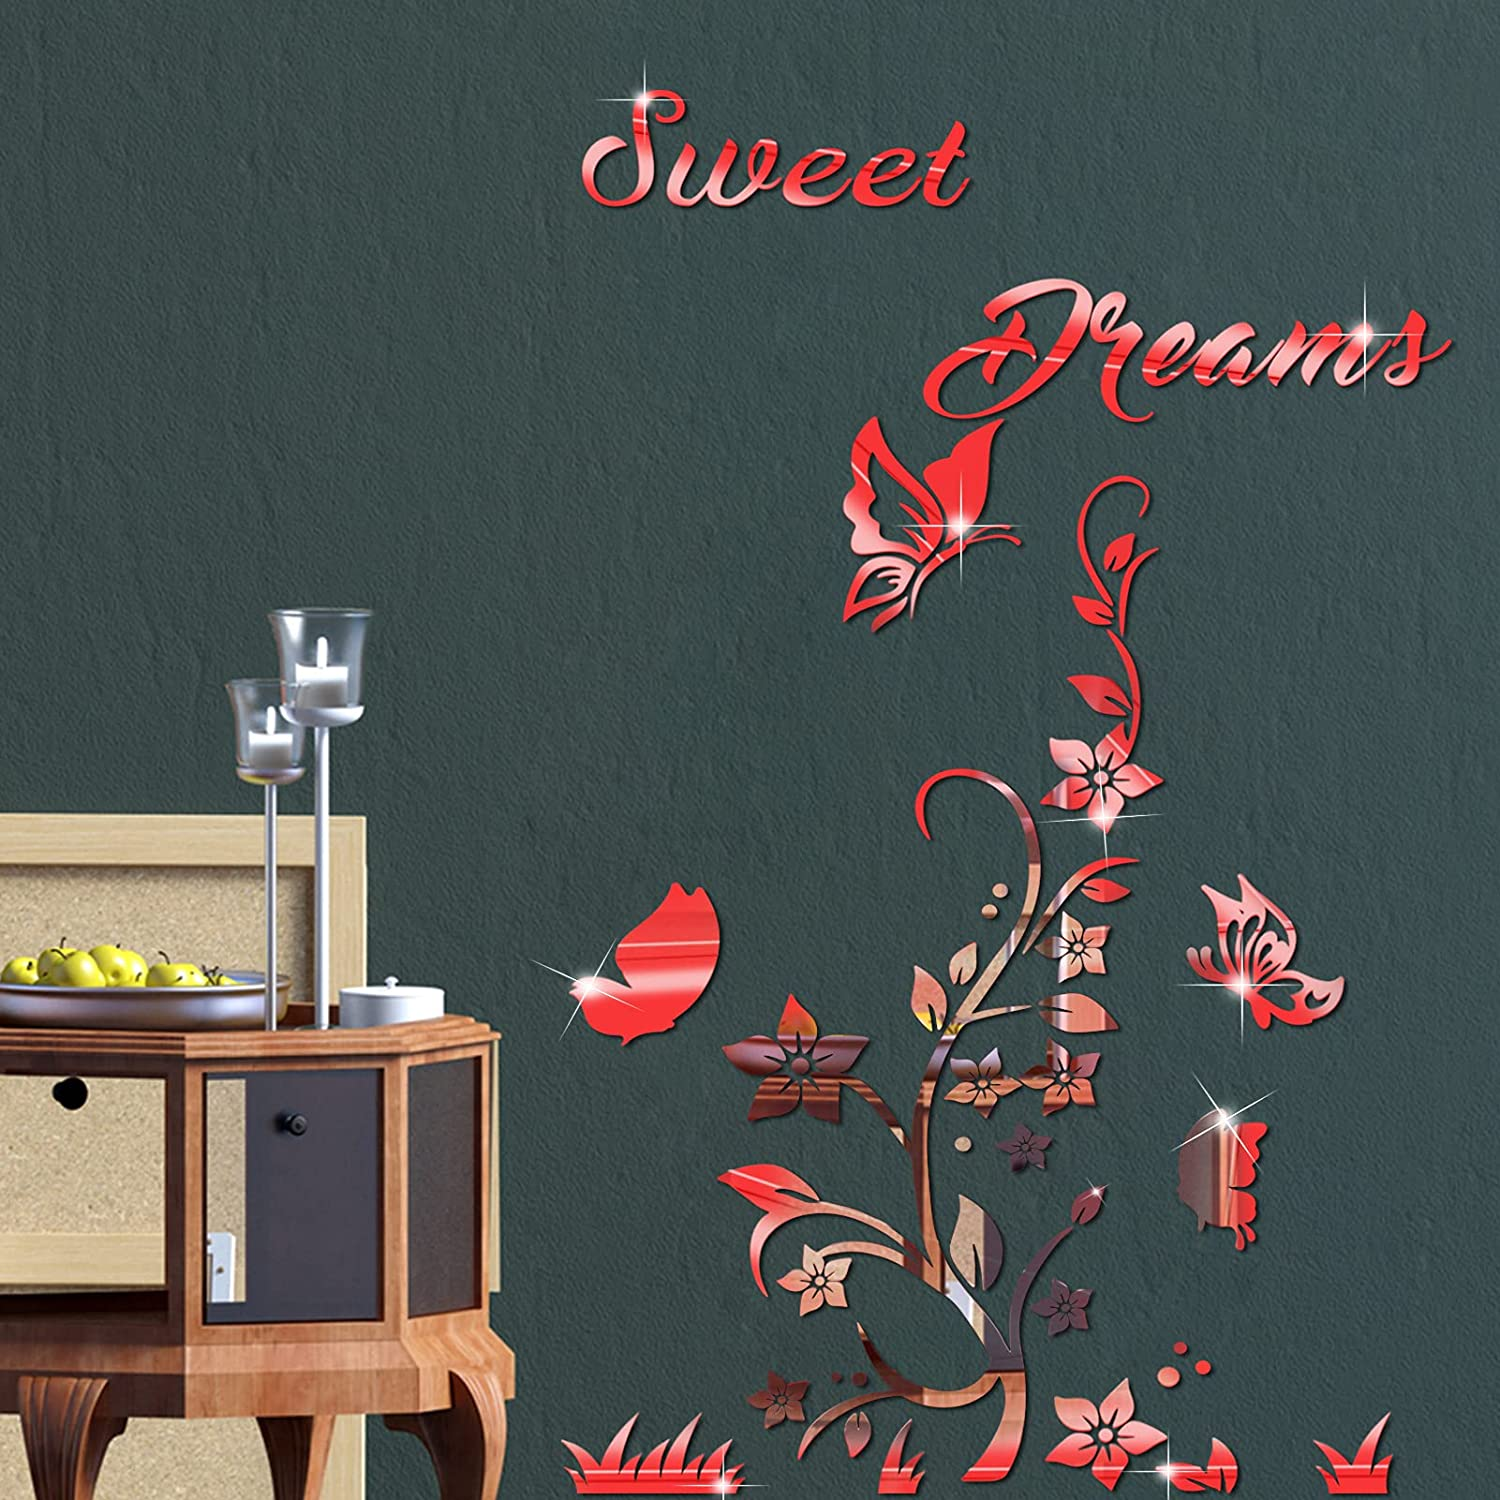 3D Acrylic Mirror Flower Sweet Dream D Decal Tampa Direct stock discount Mall Sticker Quote Wall